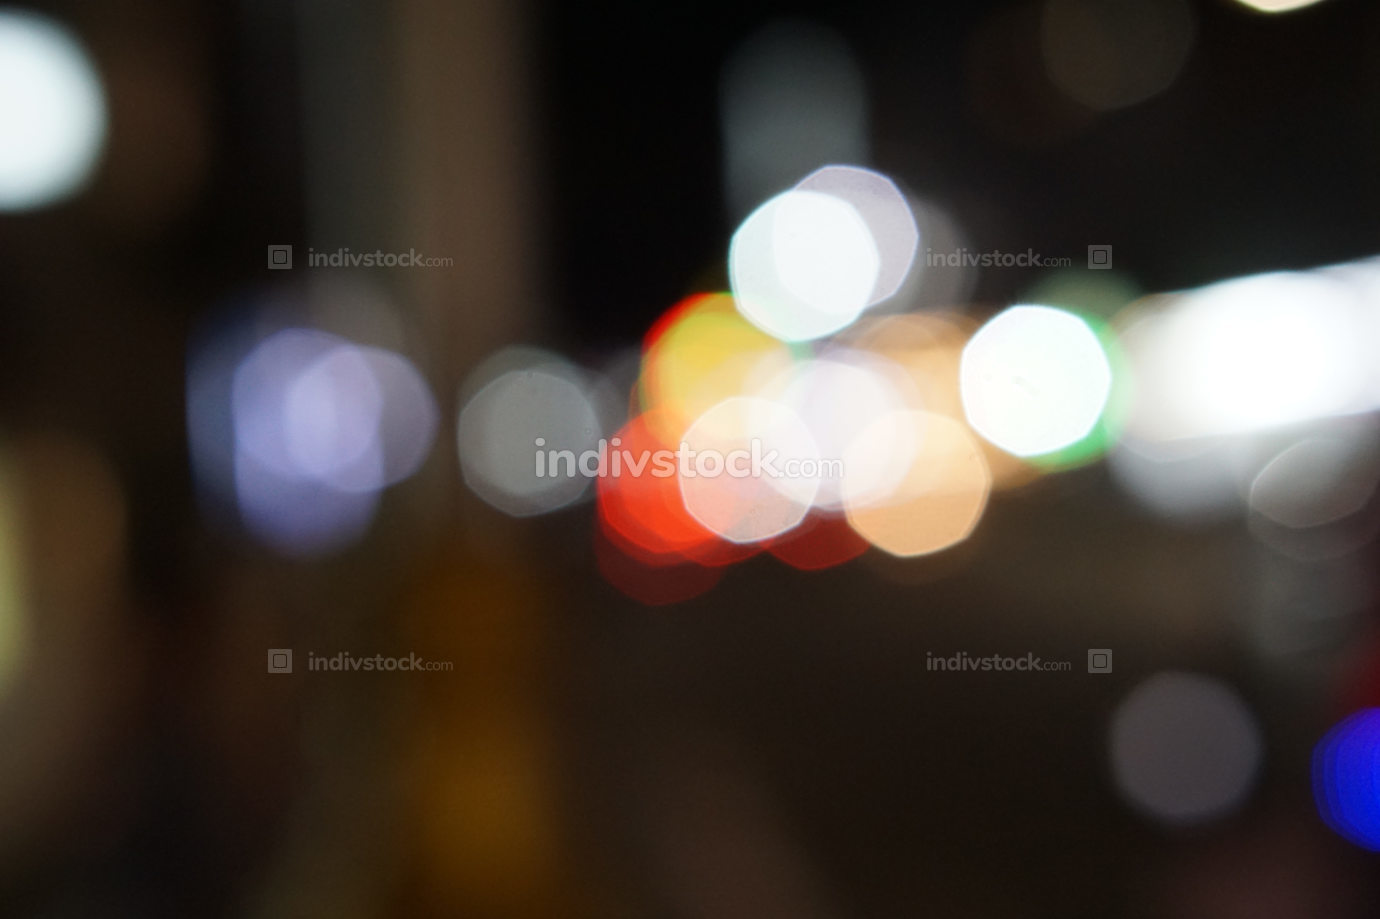 free download: city street lights blurred background